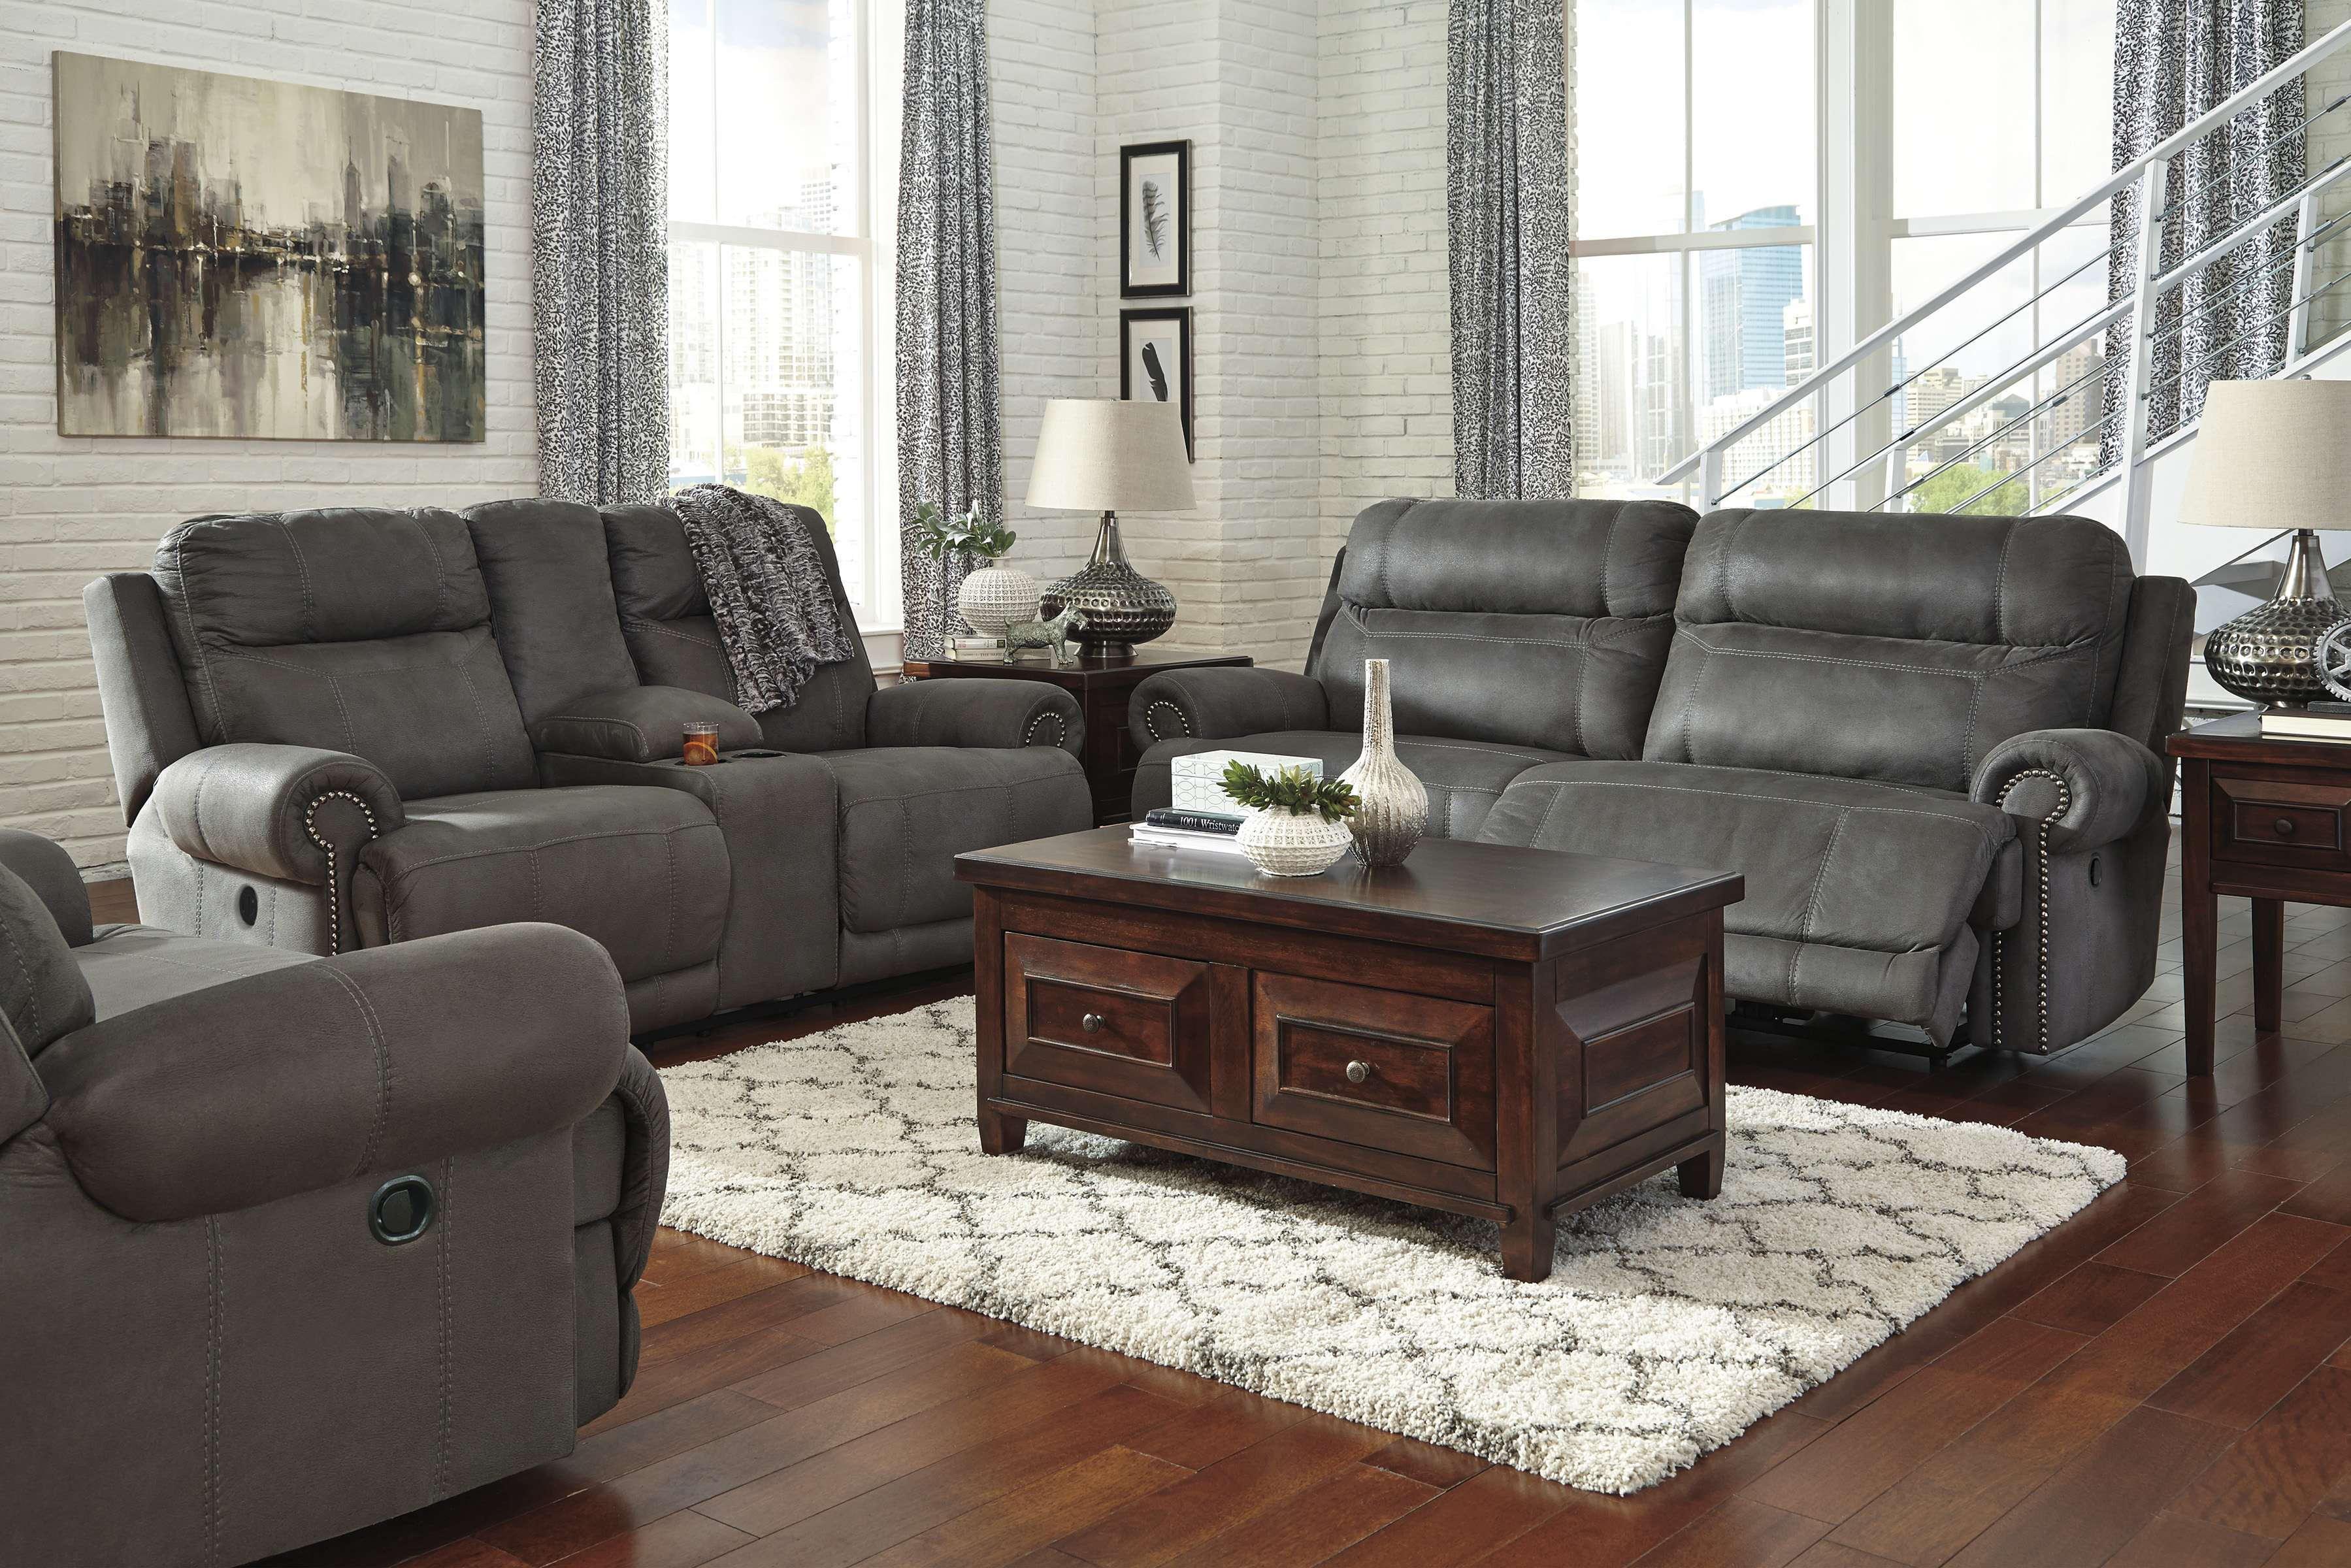 Signature Design Ashley 3840181 3840194 3840152 for 12 Awesome Concepts of How to Improve Living Room Set 3 Piece